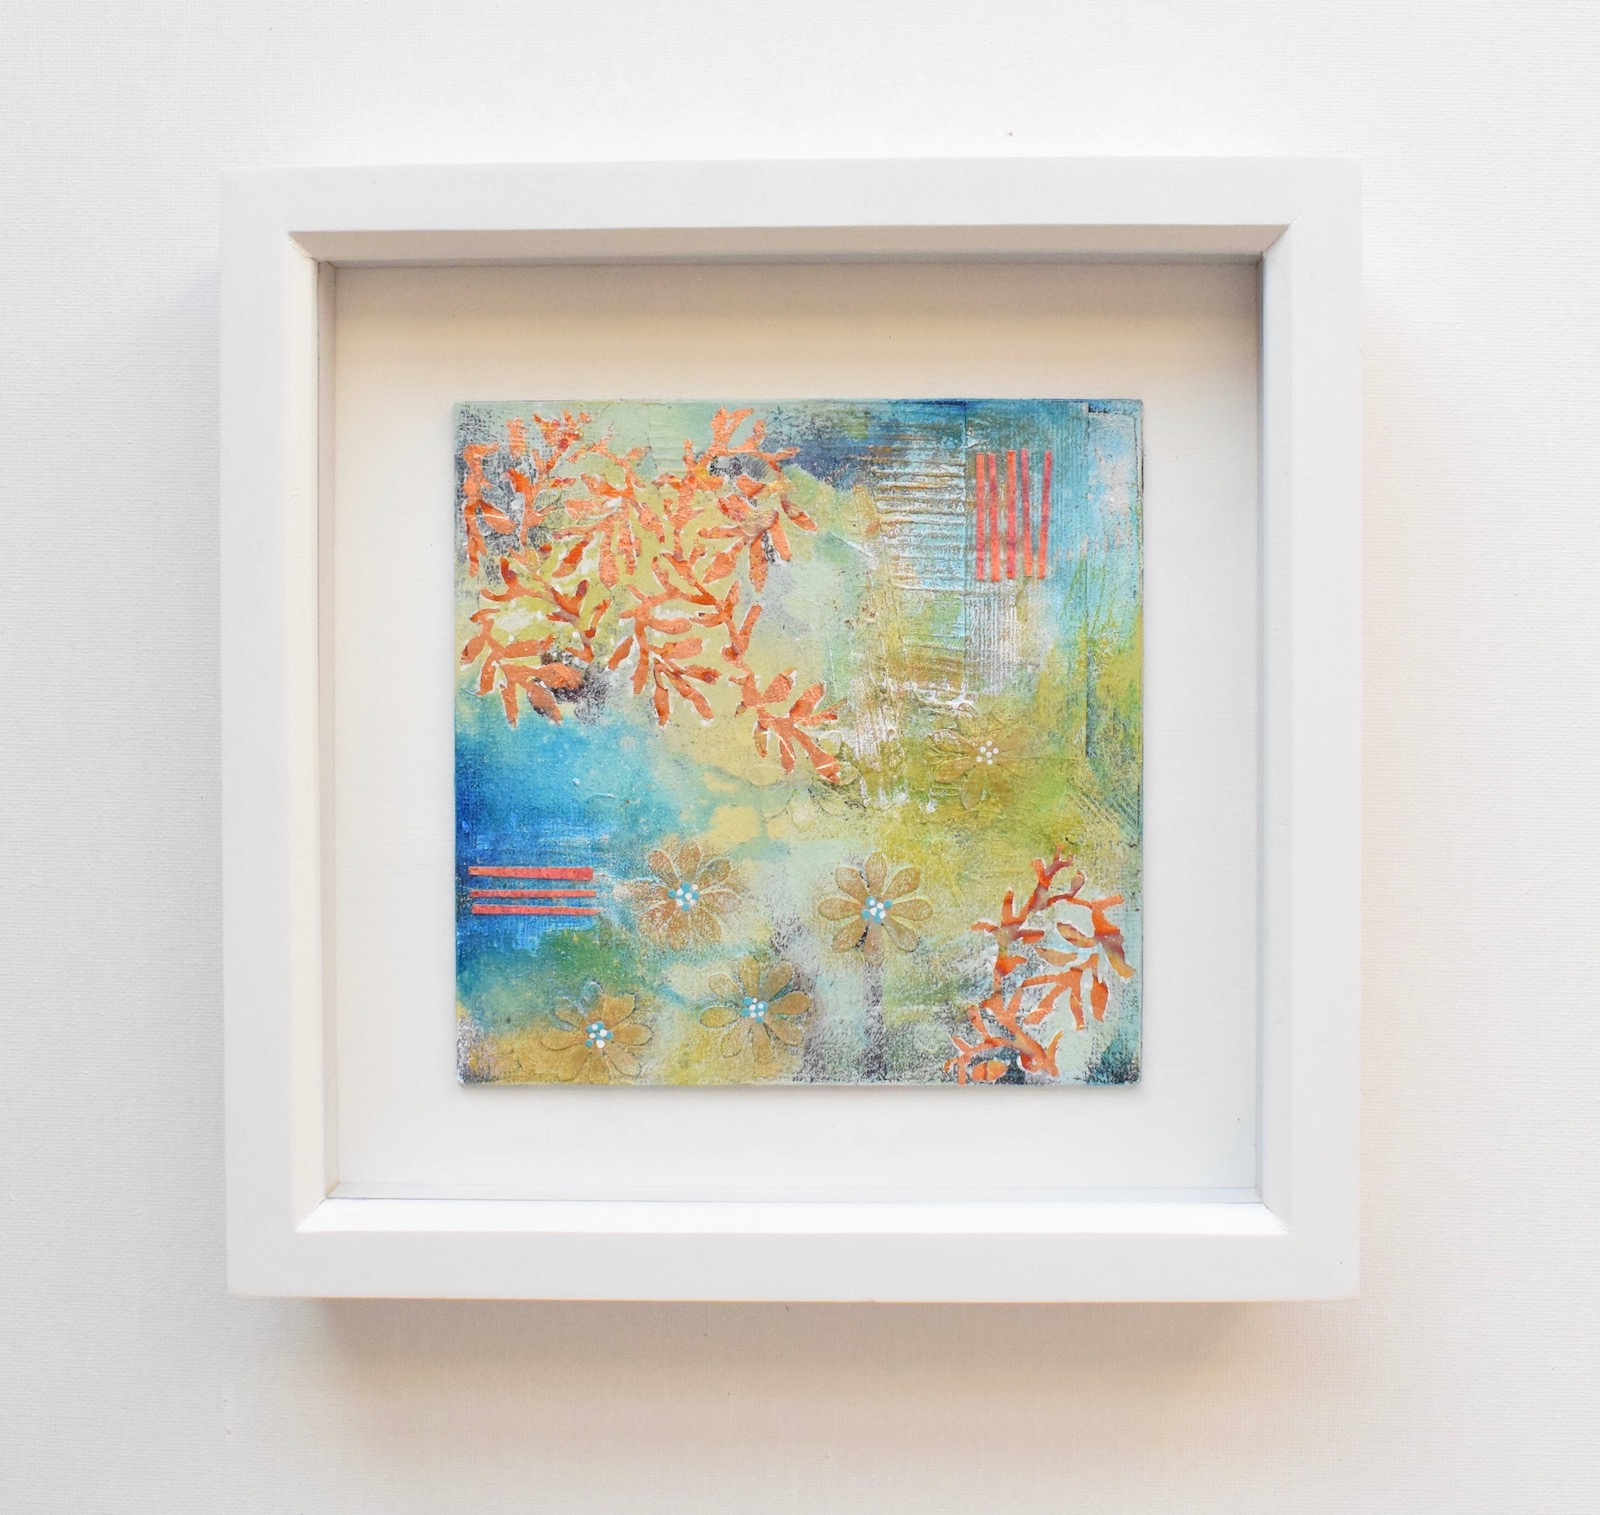 DSC 6072 - Small, mixed media abstract art, aqua and gold in white frame(40)